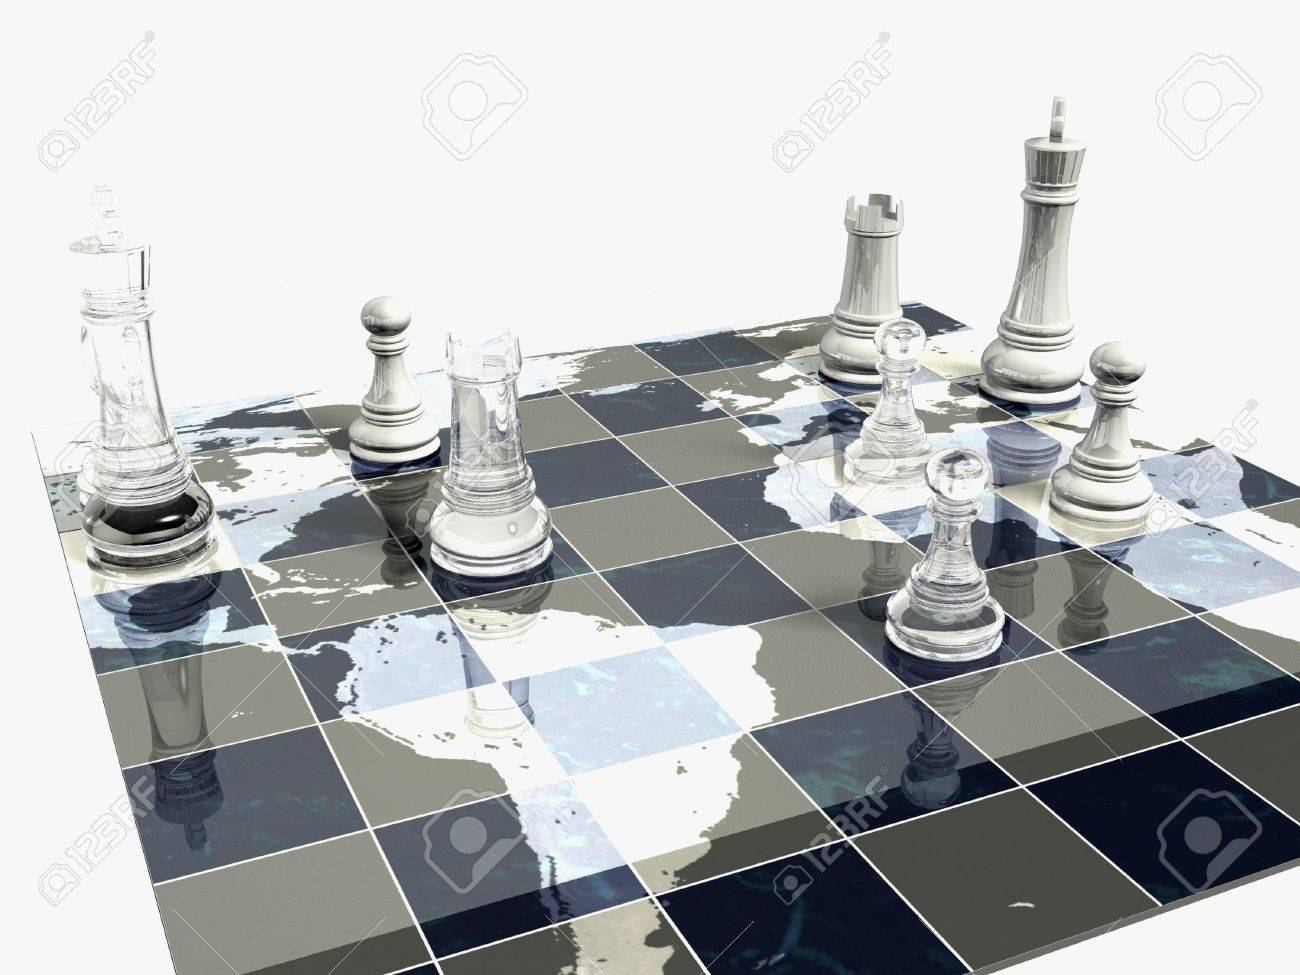 Political Chess Game - 3133104